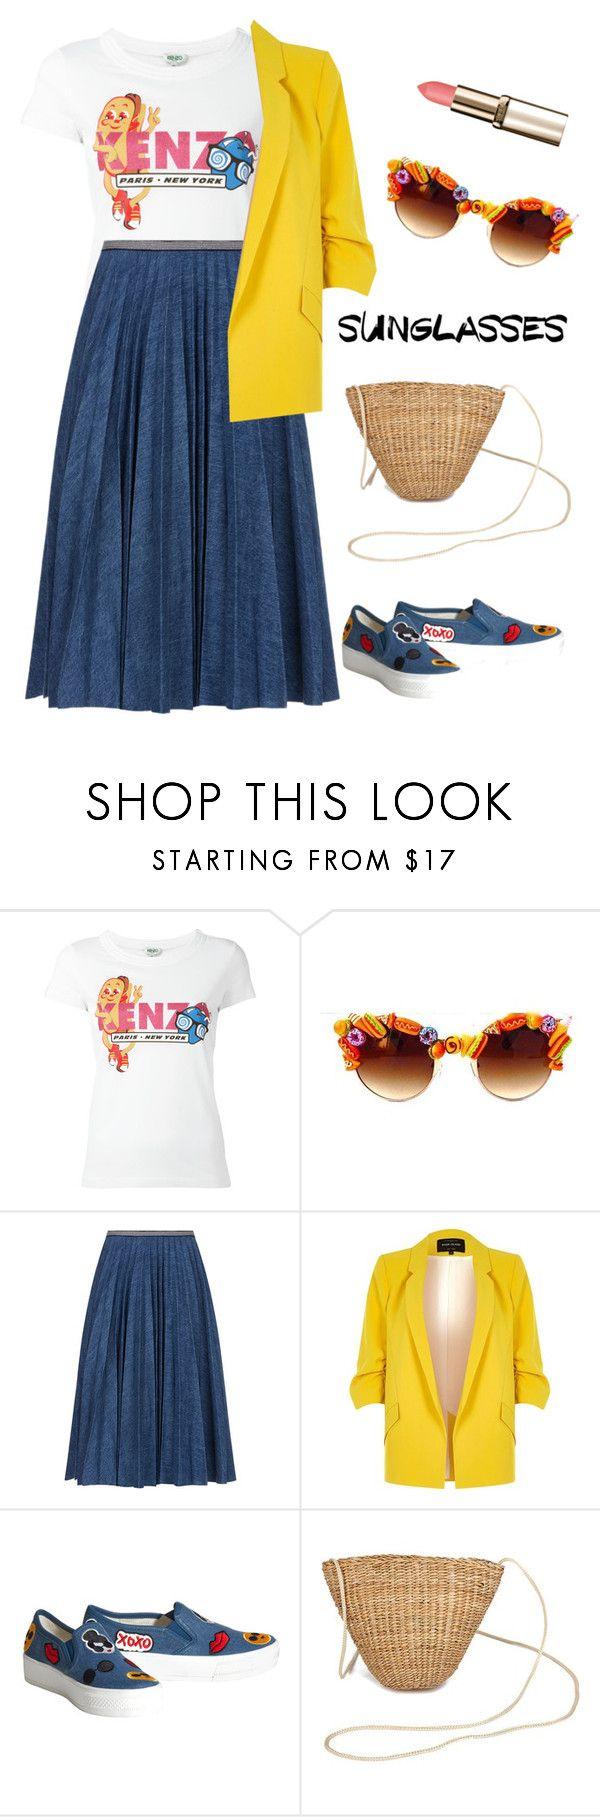 """funny vintage sunglasses"" by katymill ❤ liked on Polyvore featuring Kenzo, Gasoline Glamour, Leur Logette, River Island, Alice + Olivia, vintage, retro and RetroSunglasses"